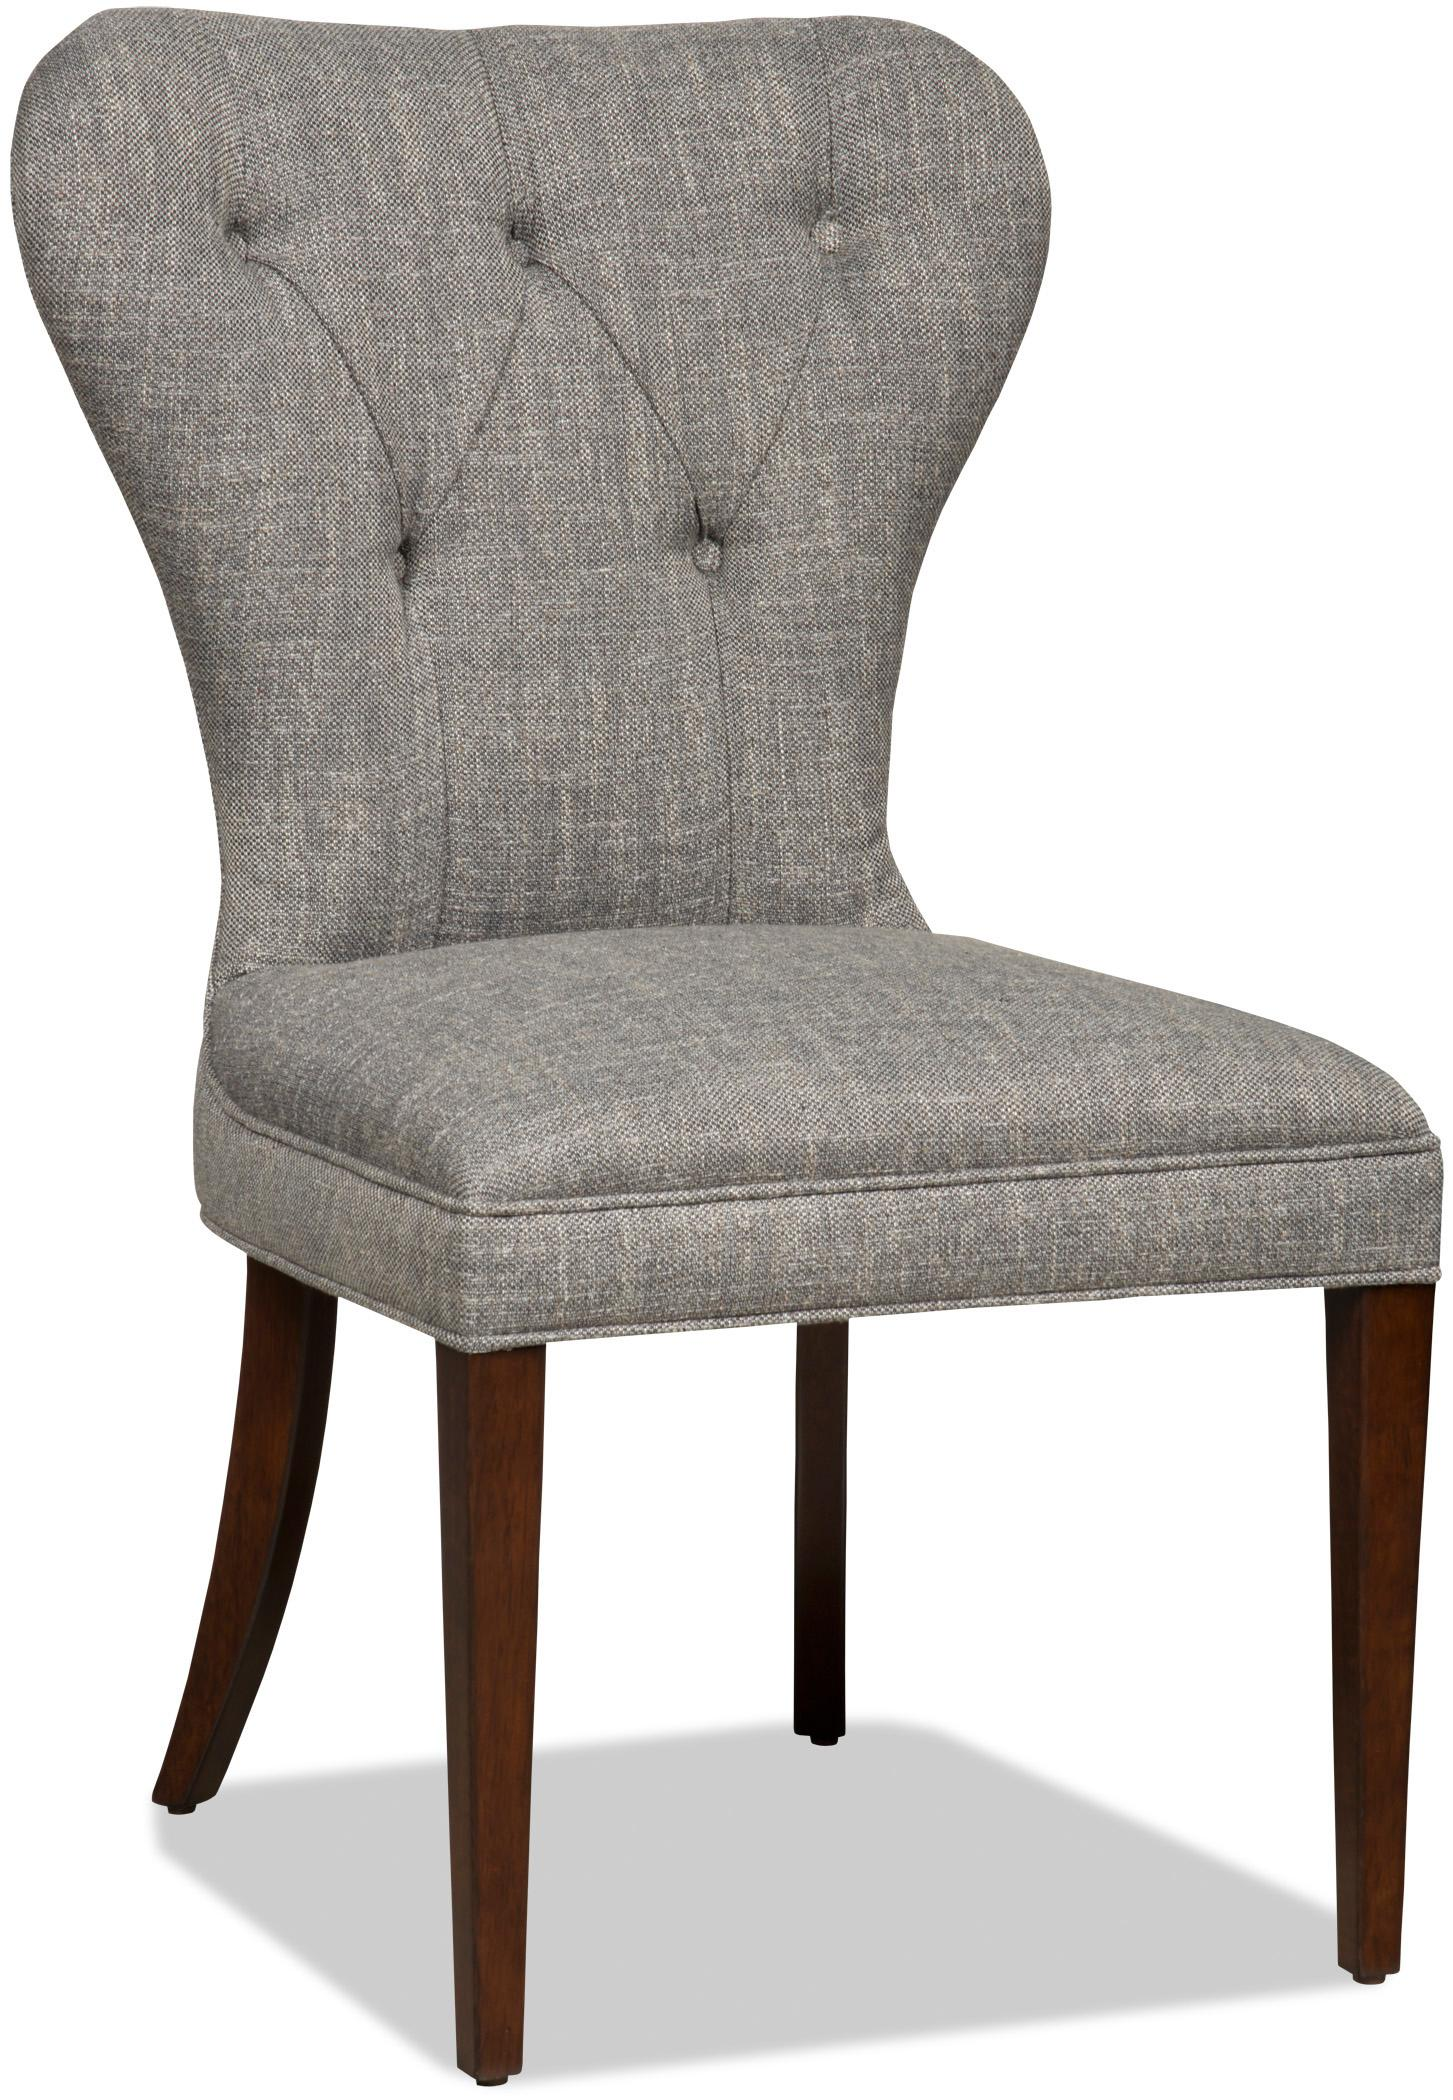 Dining Chairs Upholstered Dining Chair With Button Tufting By Hooker  Furniture